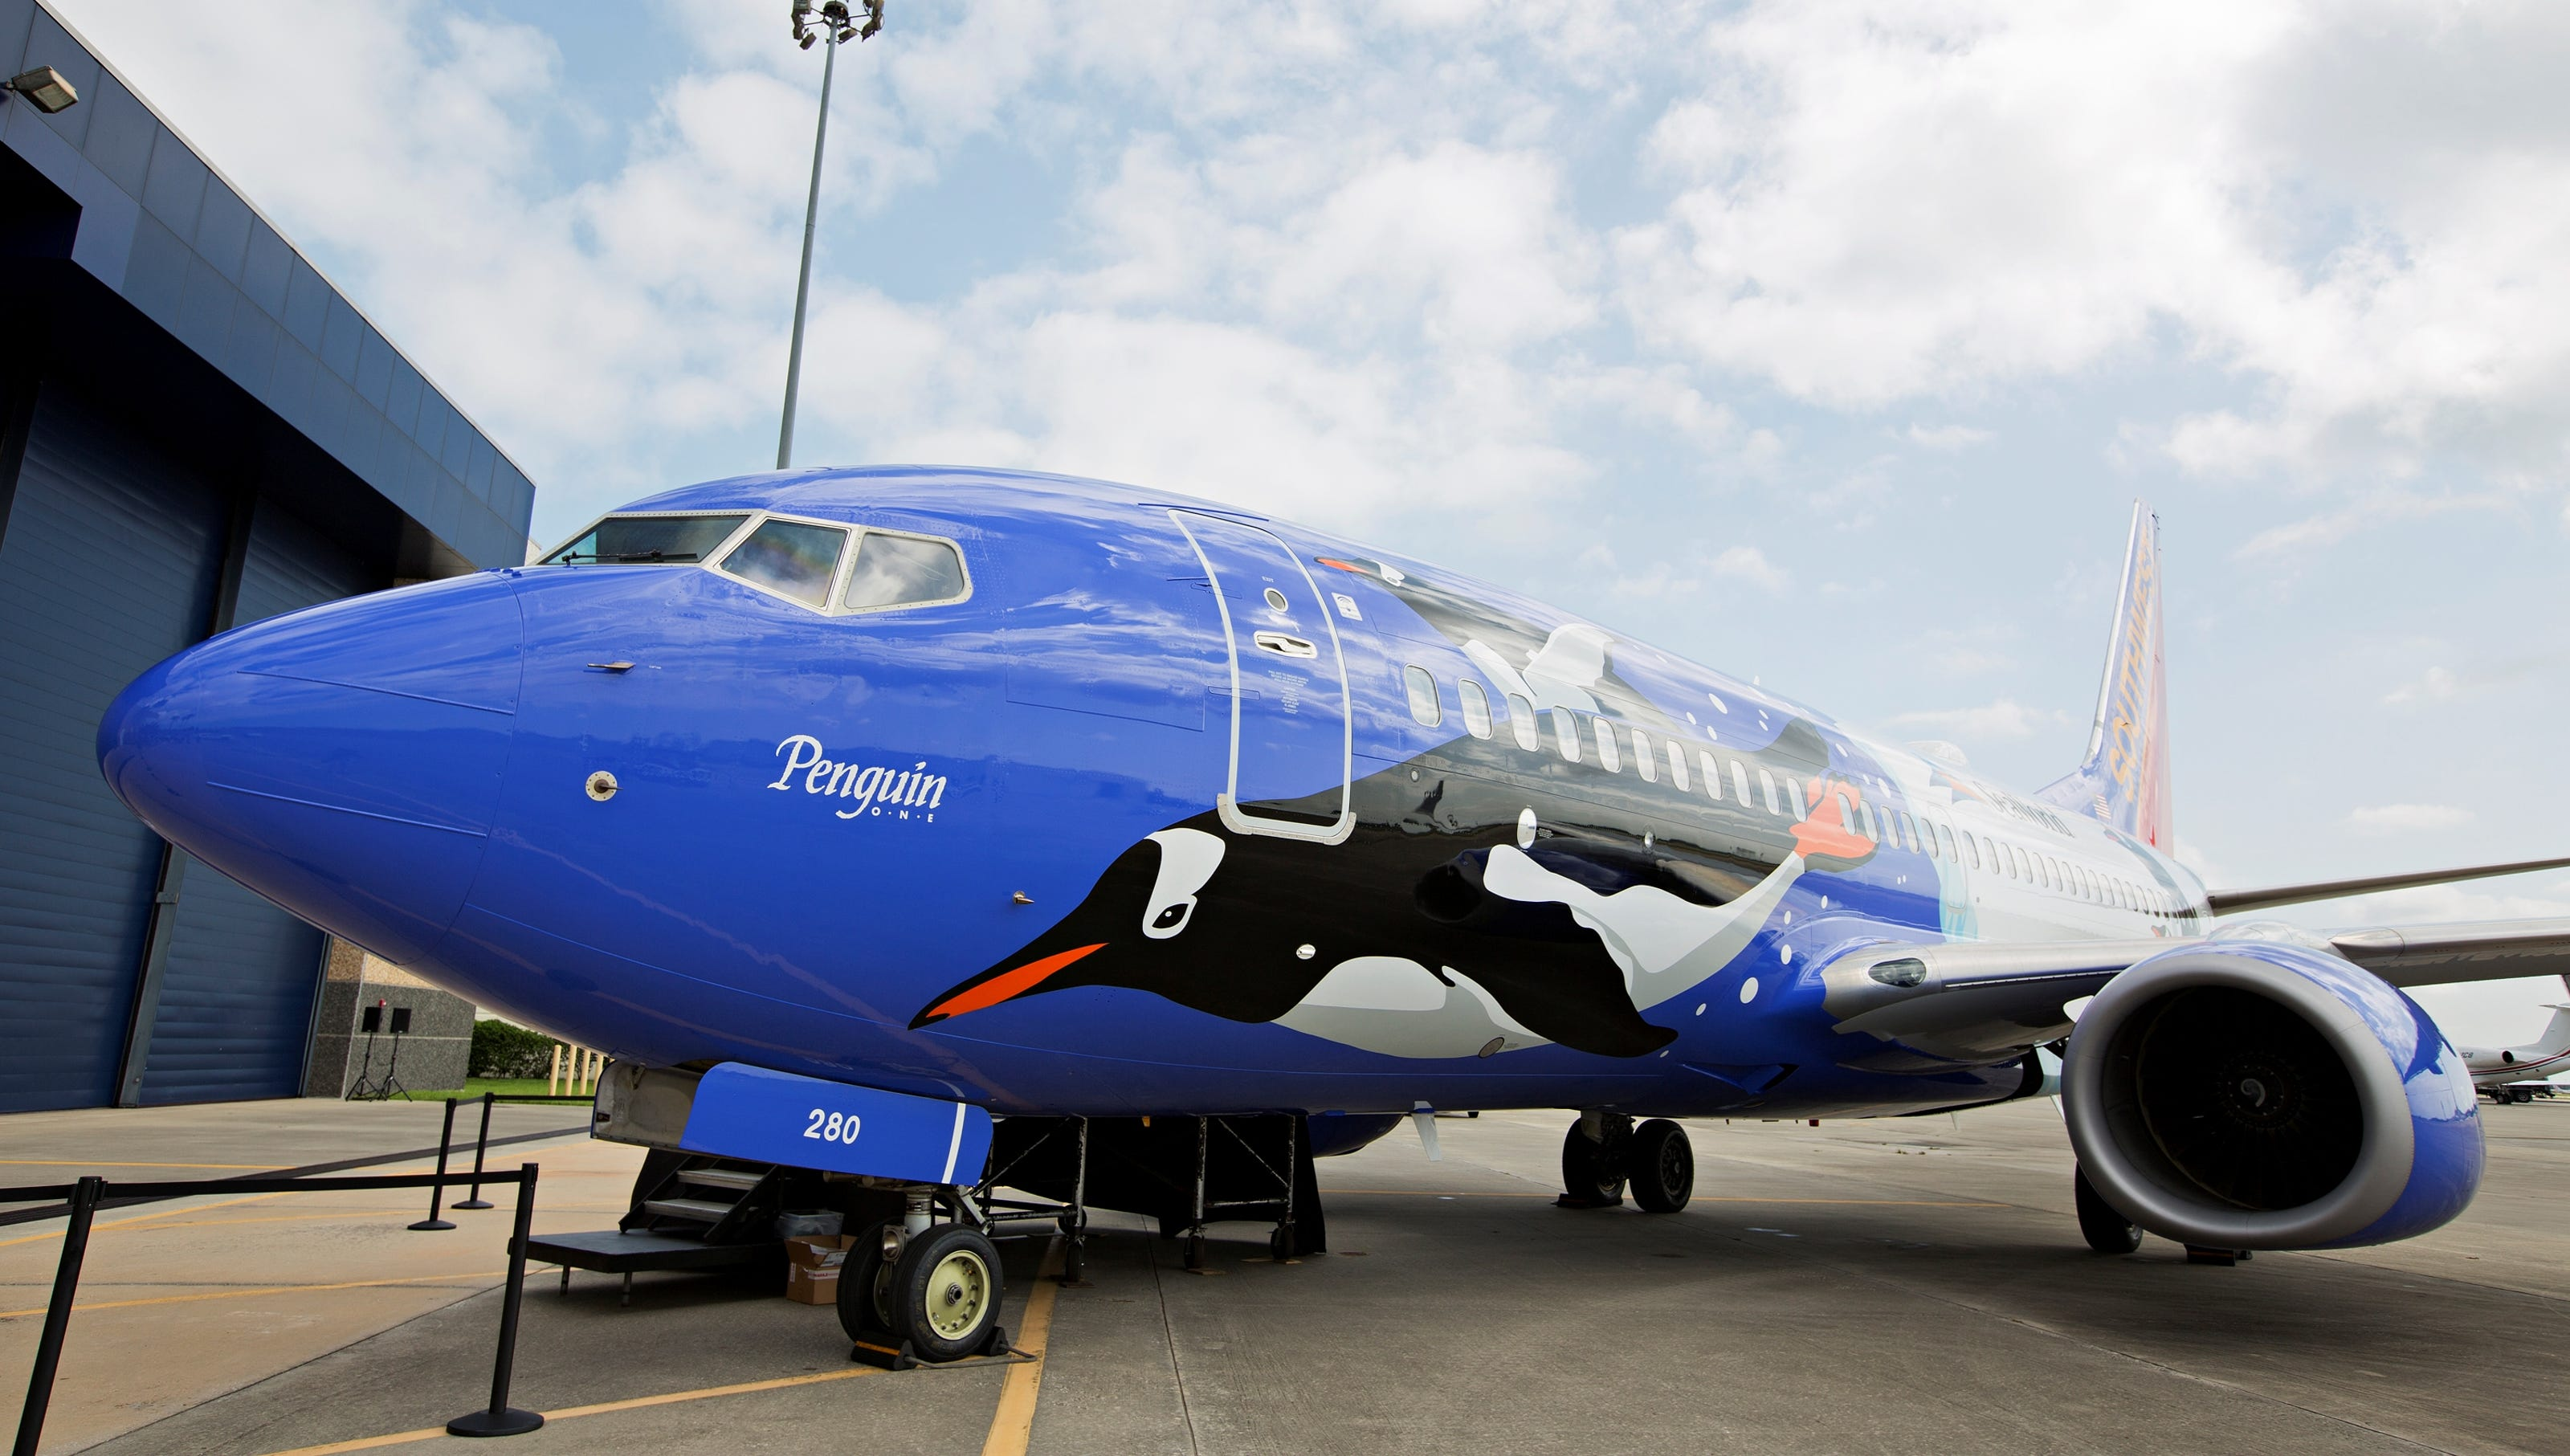 Save $$$ at Southwest Airlines with coupons and deals like: Black Friday Deal: $ Off When You Book Flight + Hotel Package ~ Black Friday Deal: $ Off When You Book Flight + Hotel Package ~ Up to $ Off Vacations to Chicago ~ 10% Off Base Rates With Dollar Rent A Car & Thrifty ~ and more >>>.